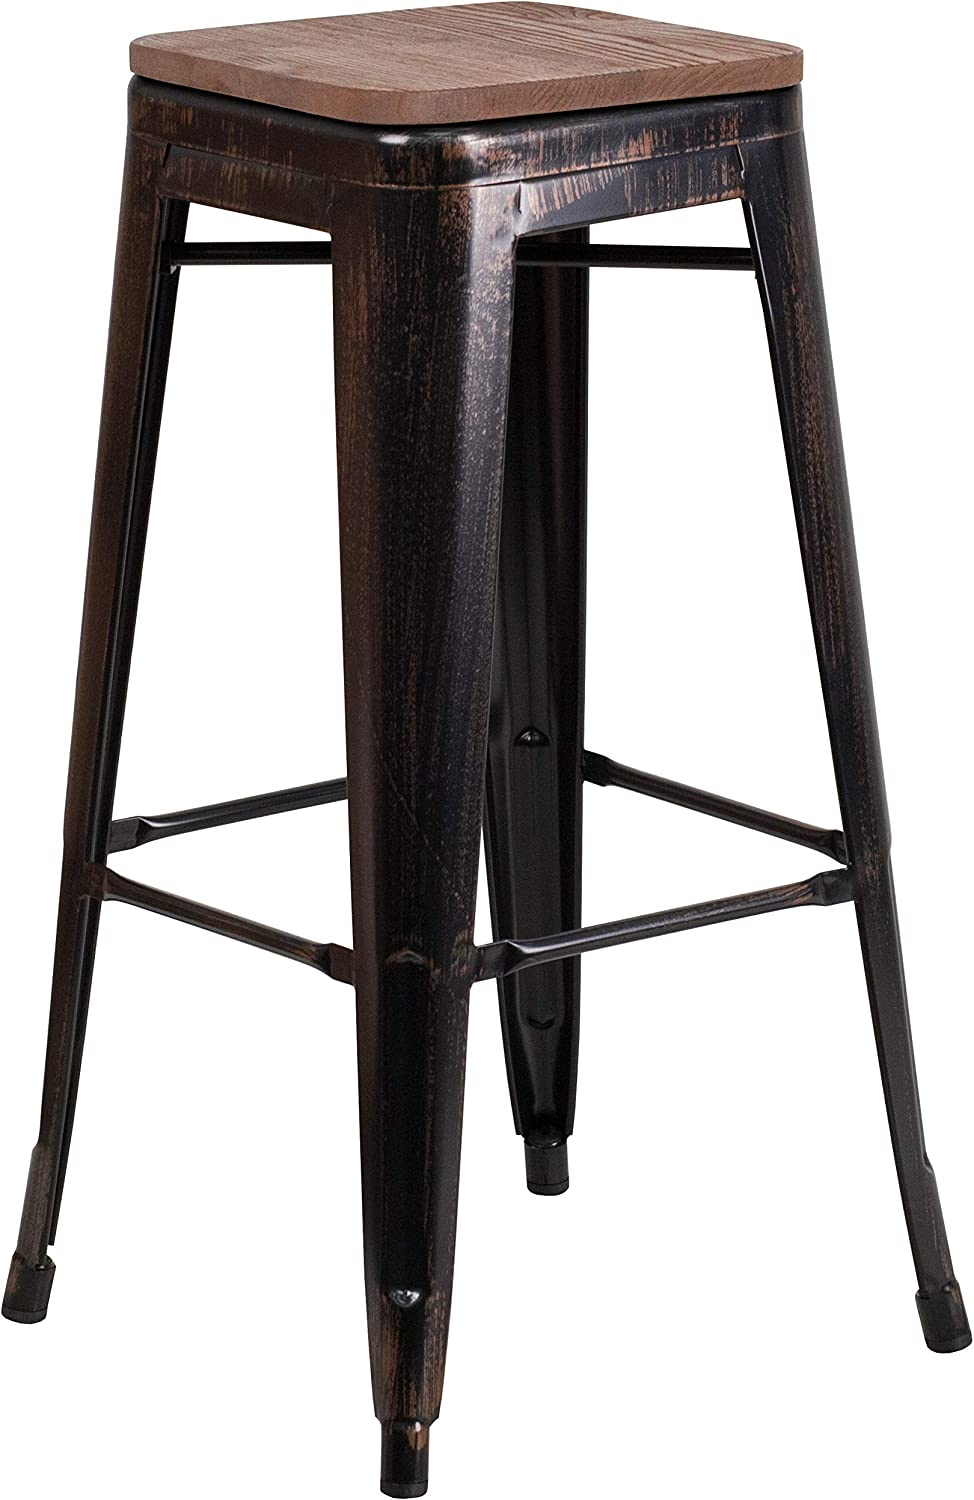 Taylor + Logan 30 Inch High Backless Metal Barstool with Square Wood Seat, Black Antique Gold